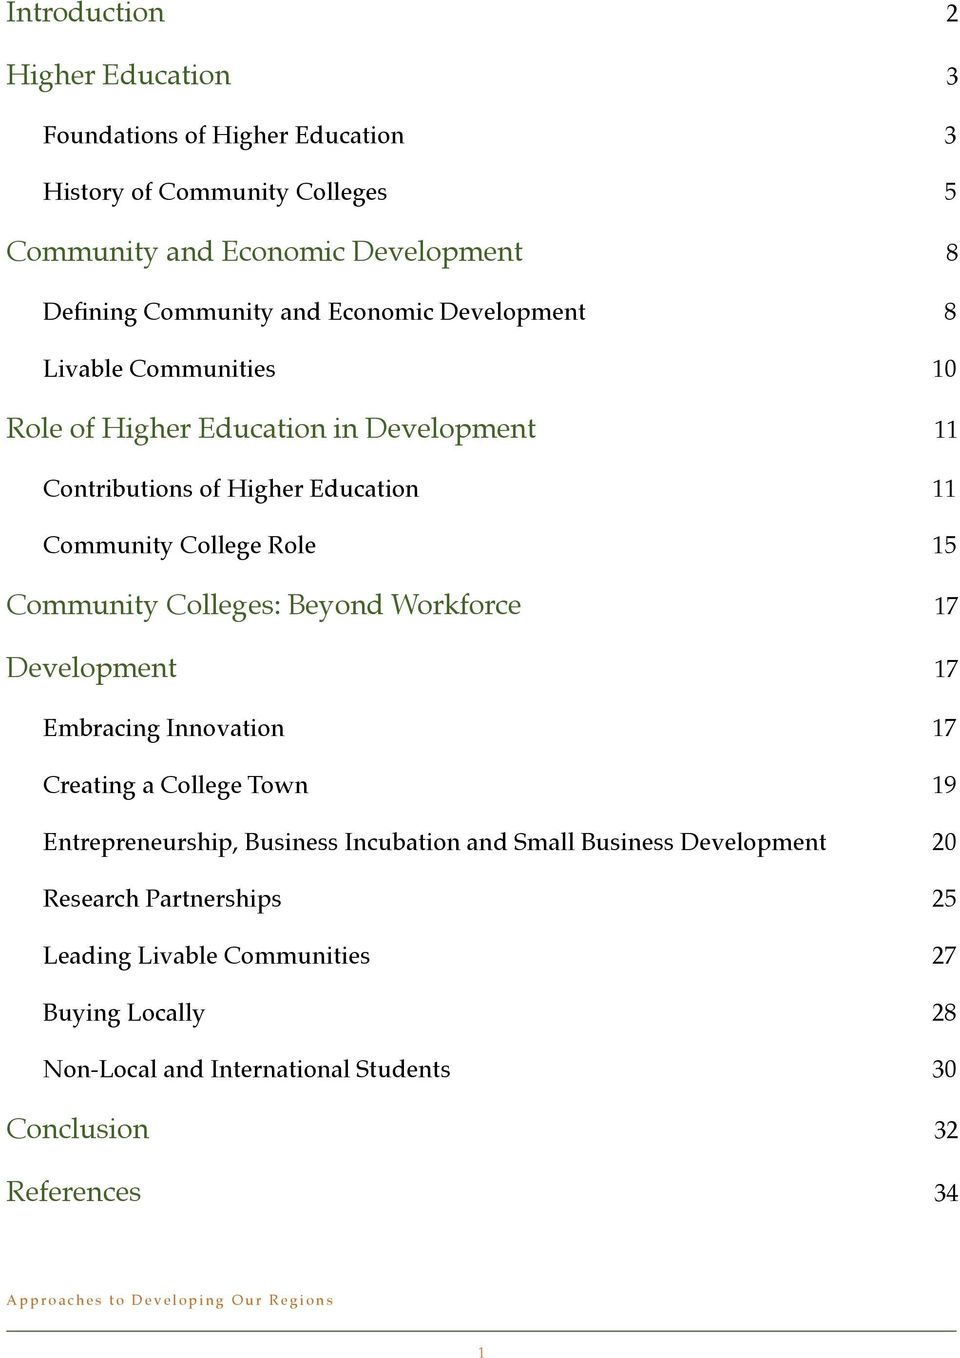 11 Community College Role! 15 Community Colleges: Beyond Workforce! 17 Development! 17 Embracing Innovation! 17 Creating a College Town!